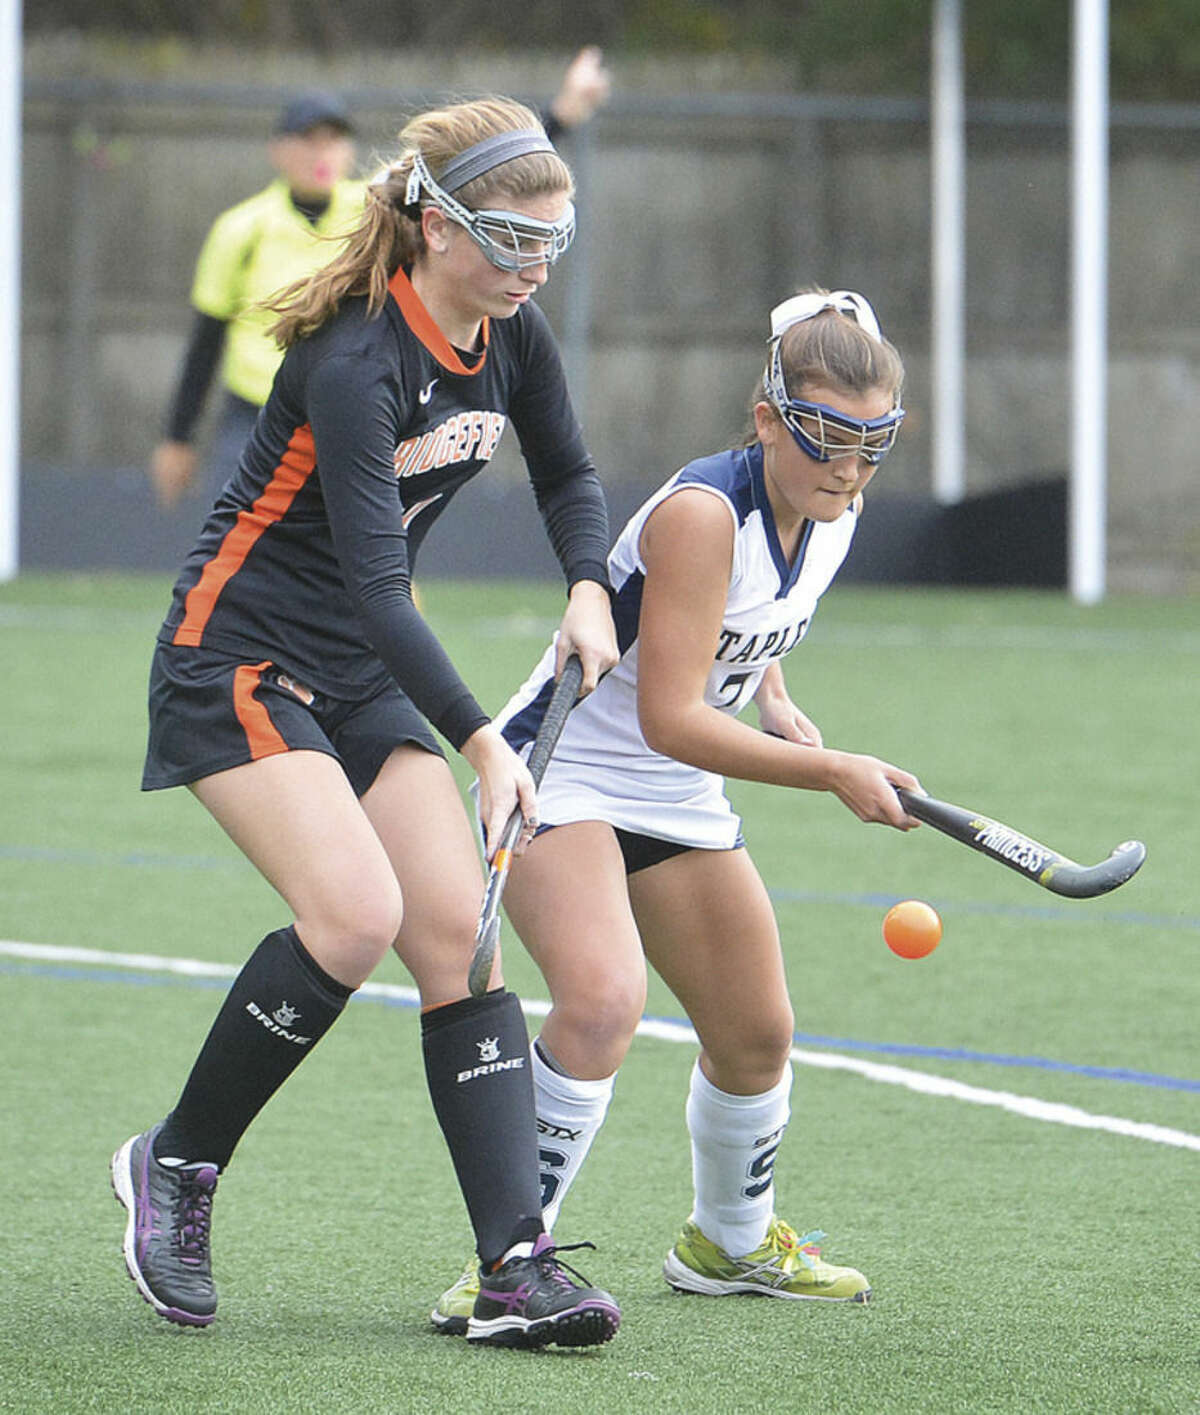 Hour photo/Alex von Kleydorff Staples' Meg Fay tries to settle the ball while Ridgefield's Margot Racy defends during Wednesday's state tournament game.